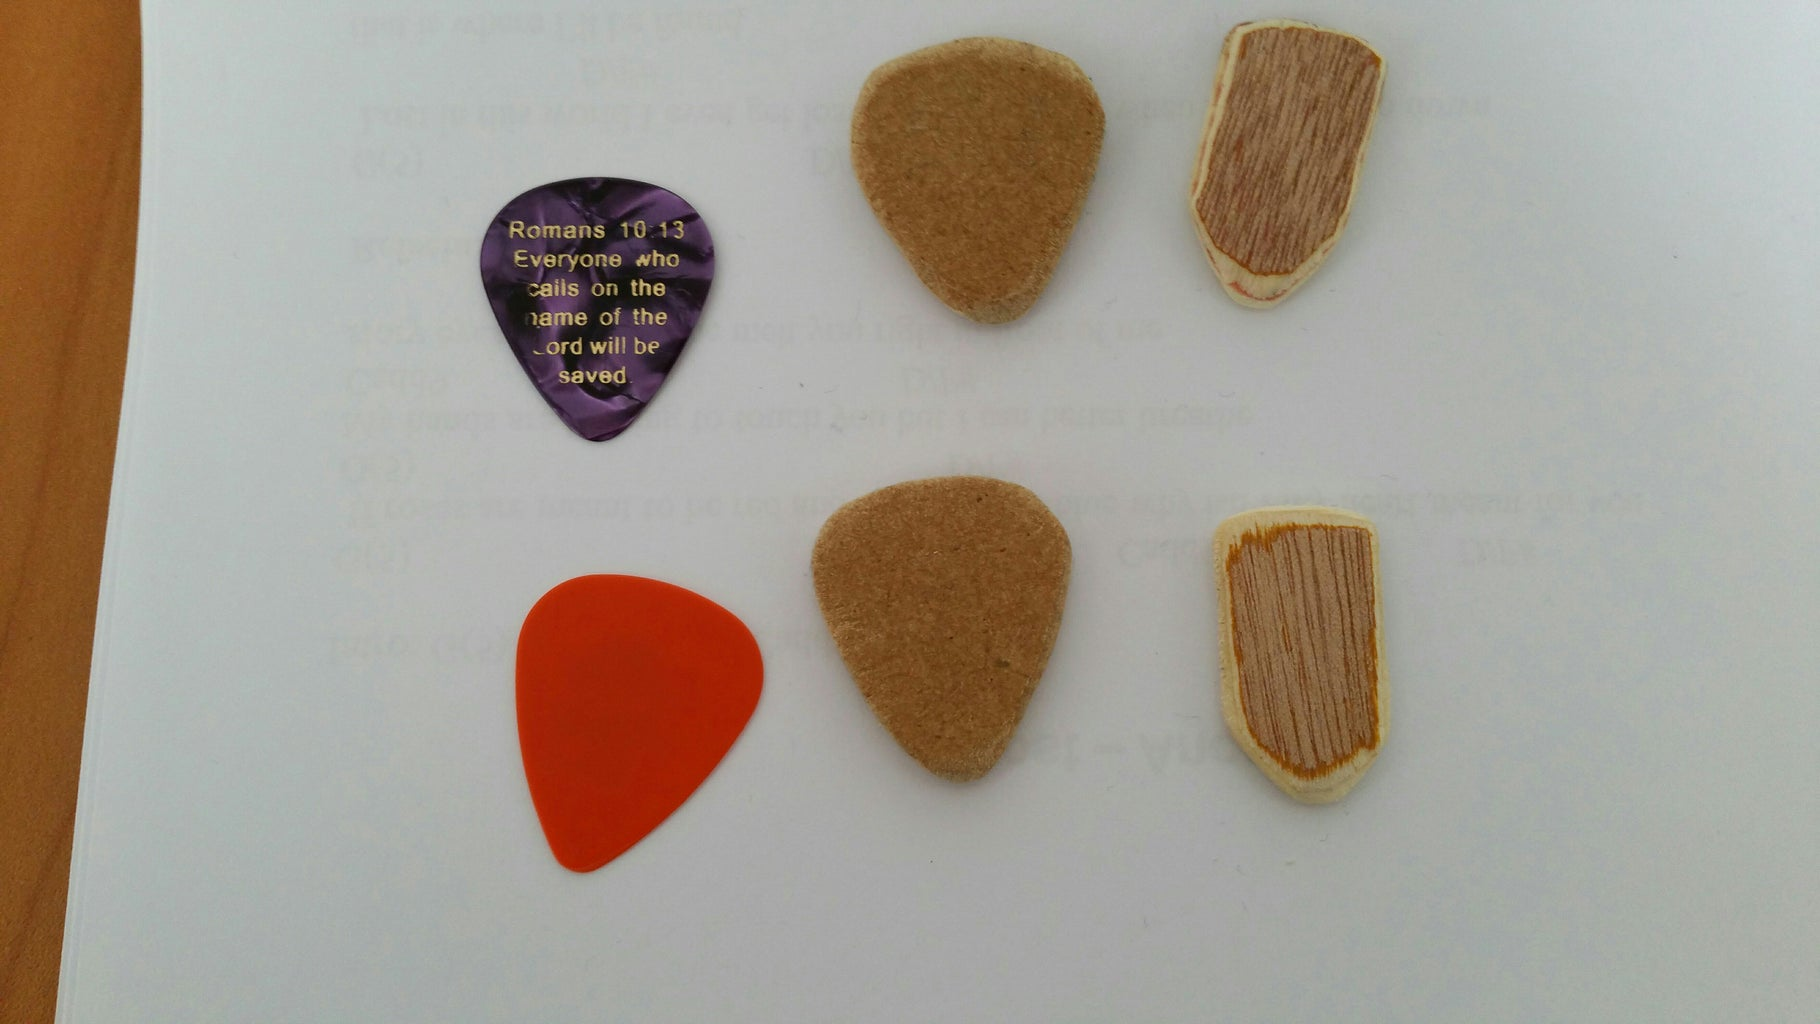 Plectrum/pick Made of Fibreboard and Plywood